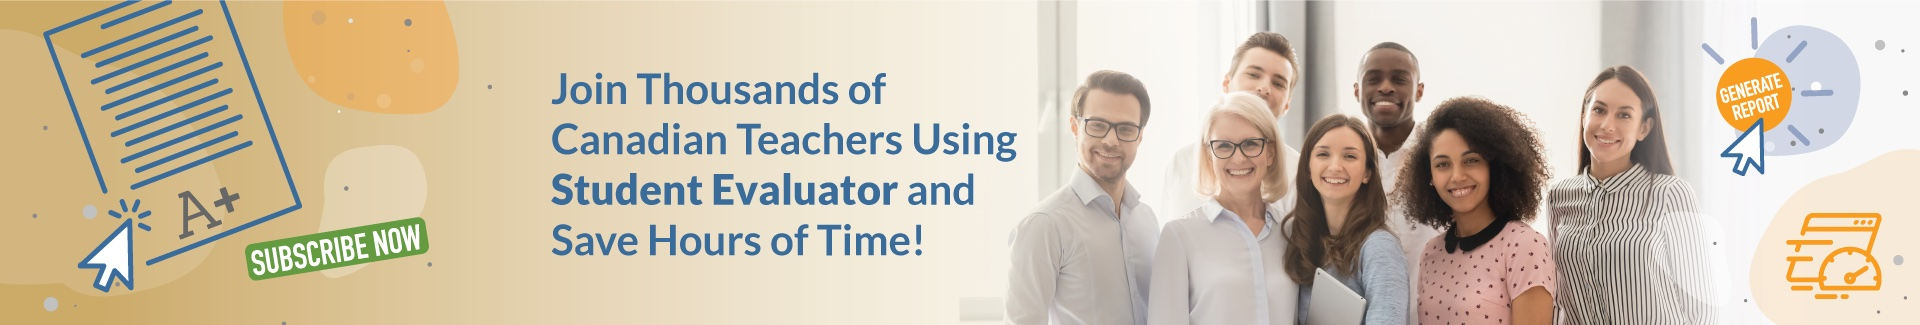 Join Thousands of Canadian Teachers Using Student Evaluator and Save Hours of Time